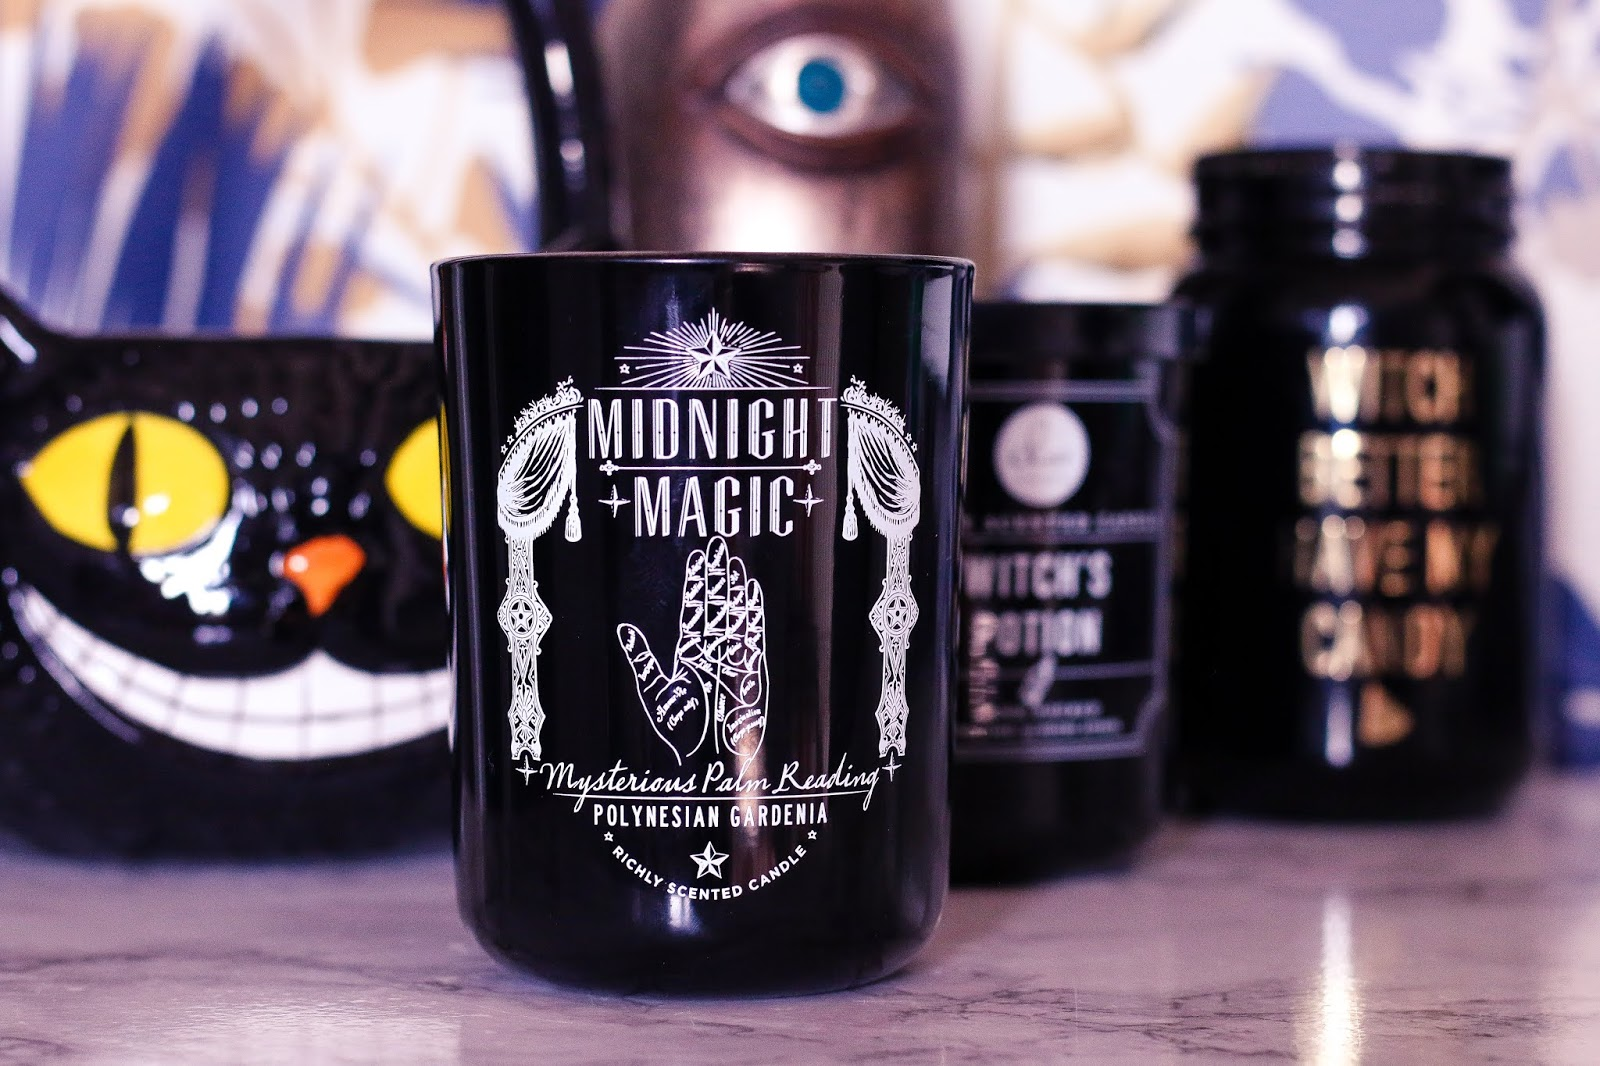 close up of a candle that had midnight magic printed on it with the illustration of a palm reading